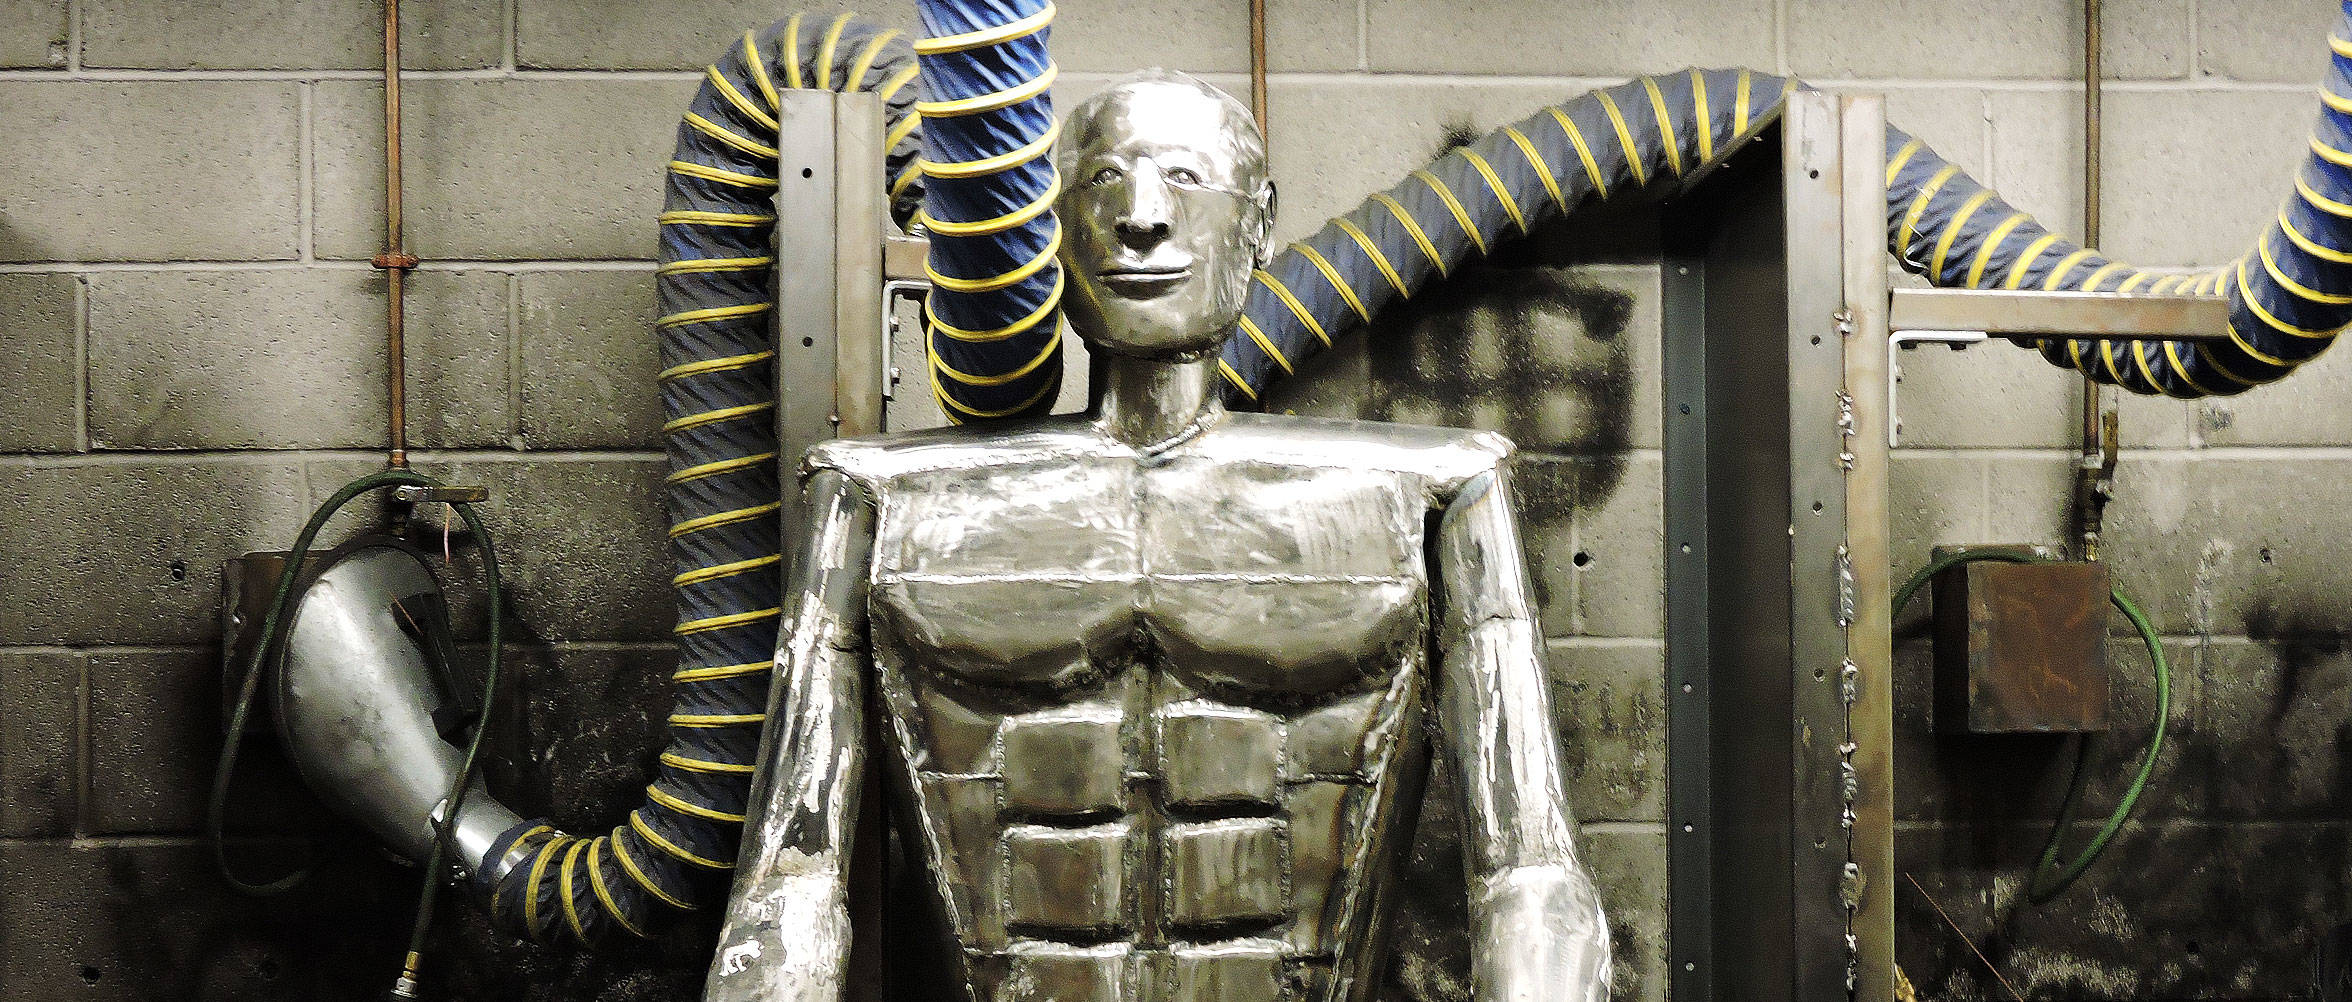 A metal sculpture of a man representing student information for Apex Technical School